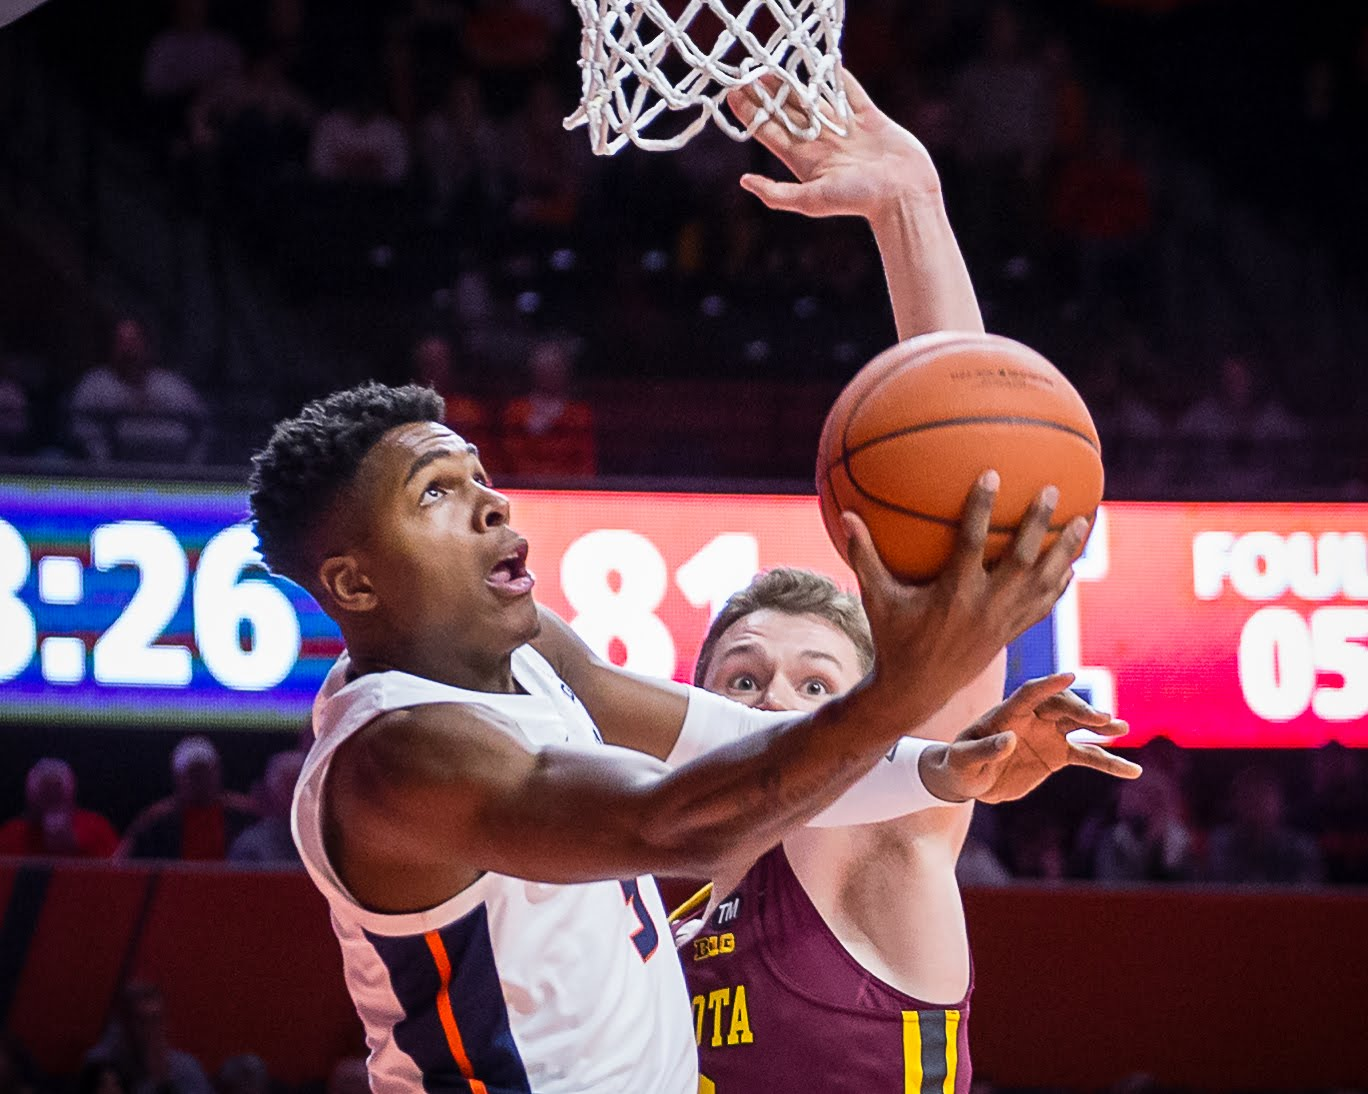 Illinois guard Tevian Jones goes up for a reverse layup during the game against Minnesota at the State Farm Center on Jan. 16. The Illini won 95-68. Illinois beat Maryland on Saturday at Madison Square Garden thanks to Jones.